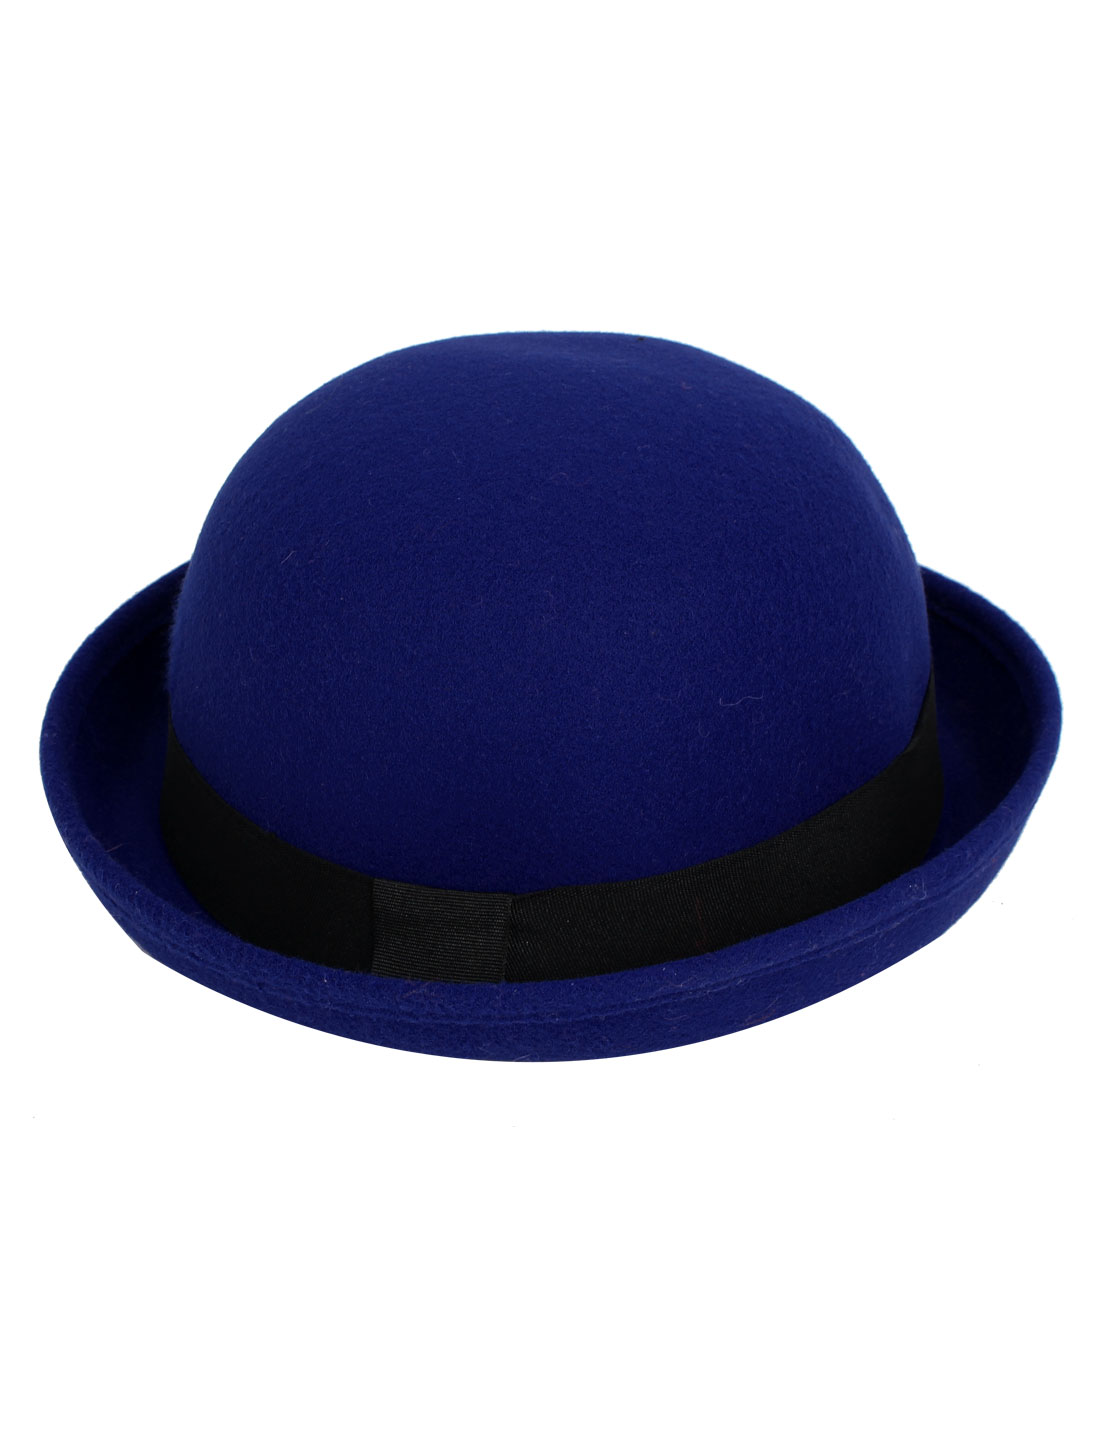 Girl Felt Upturn Brim Wedding Party Winter Warm Bowler Hat Cap Royal Blue